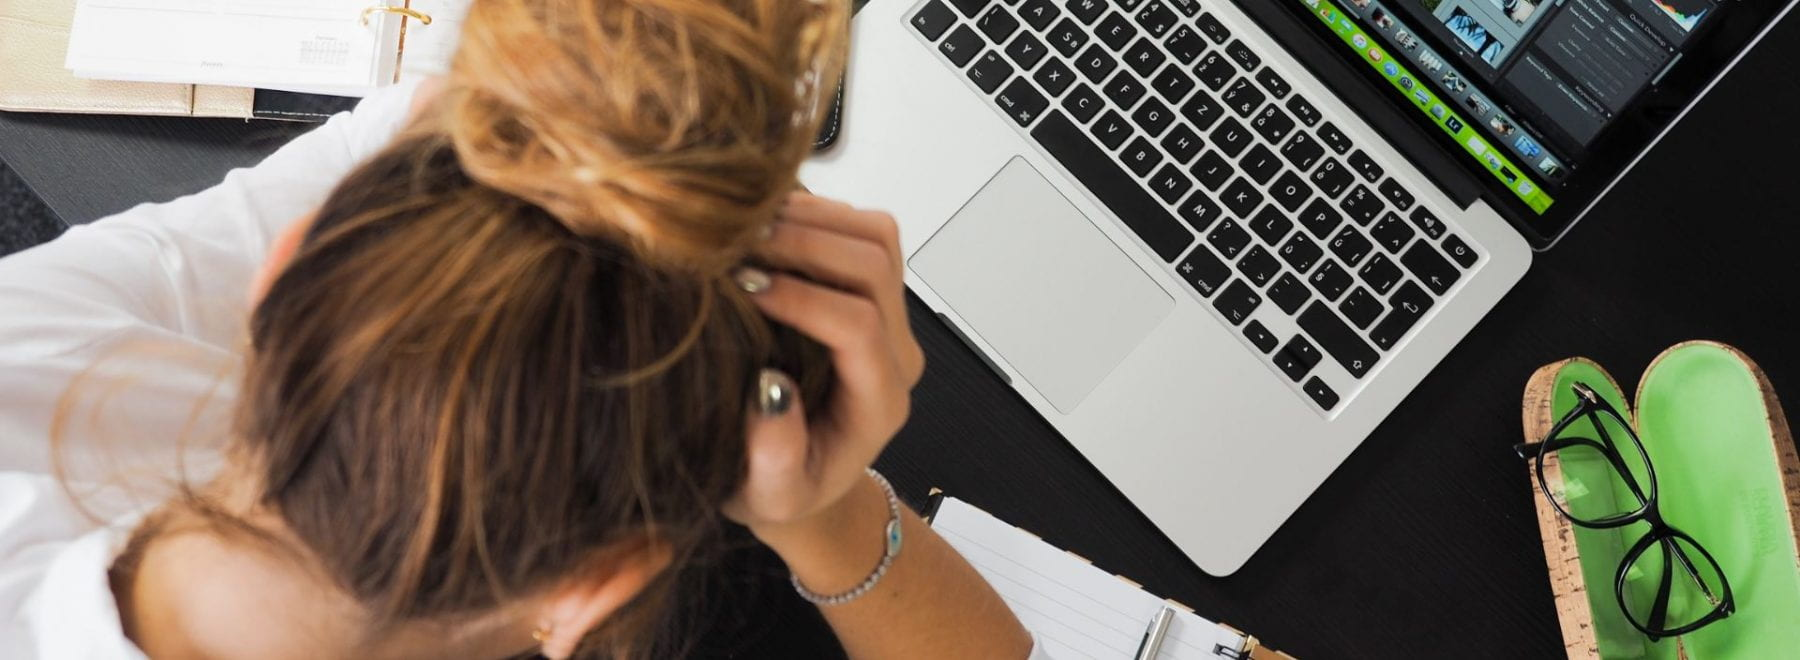 A woman stressed at her desk facing her laptop